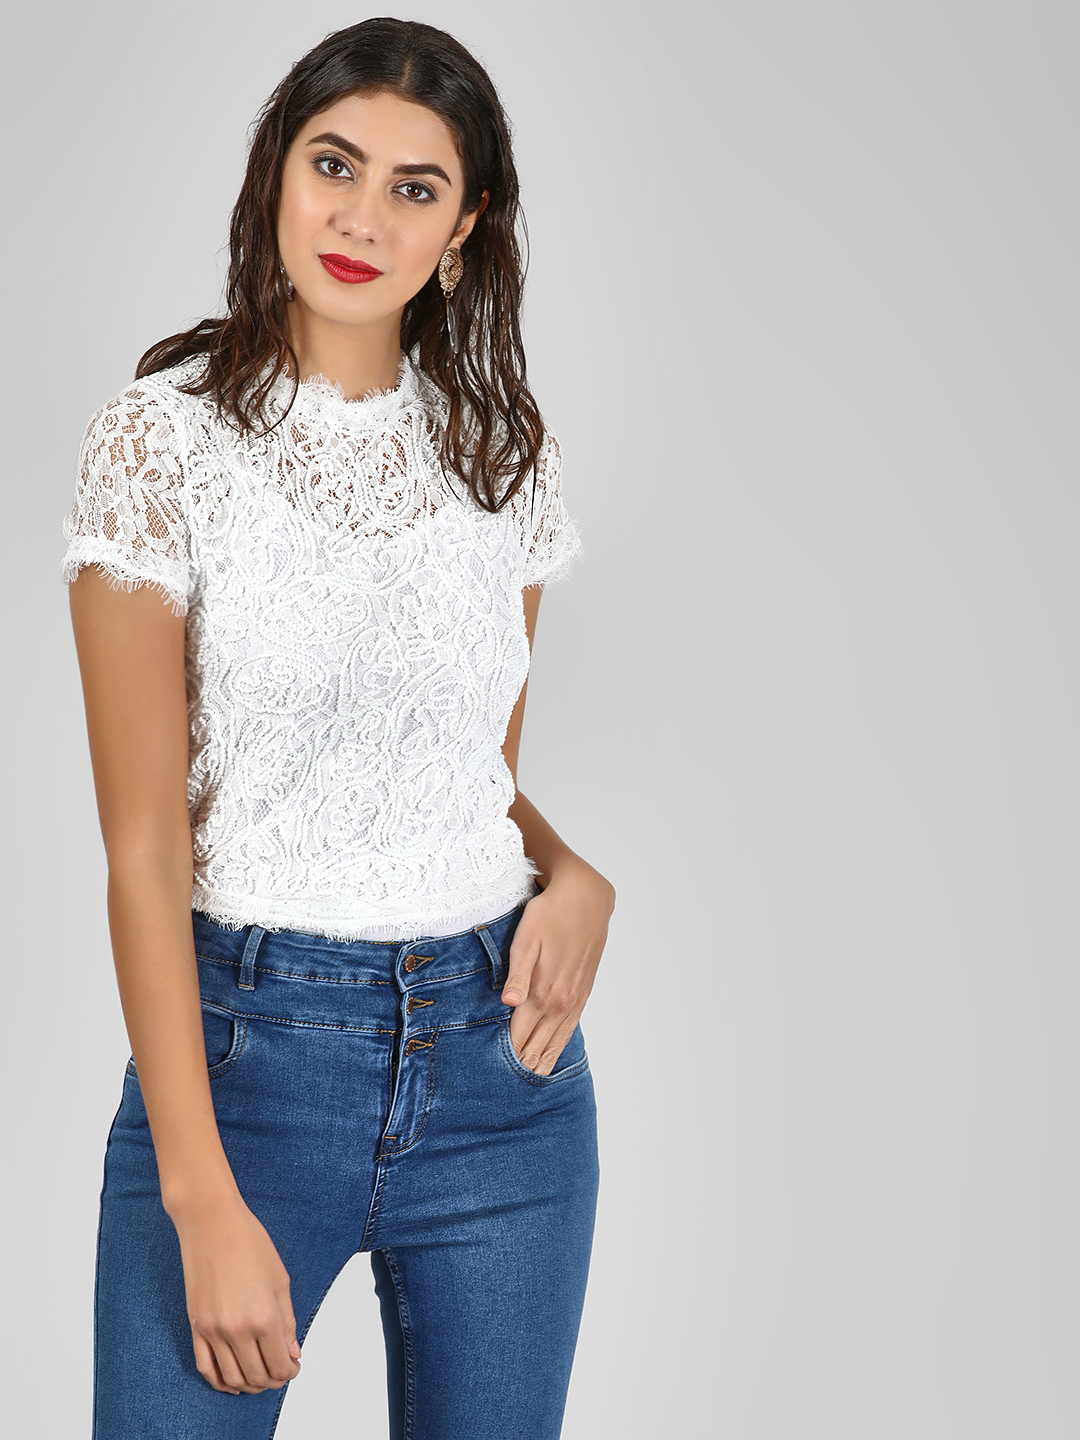 New Look White Lace Top With Back Zipper 1